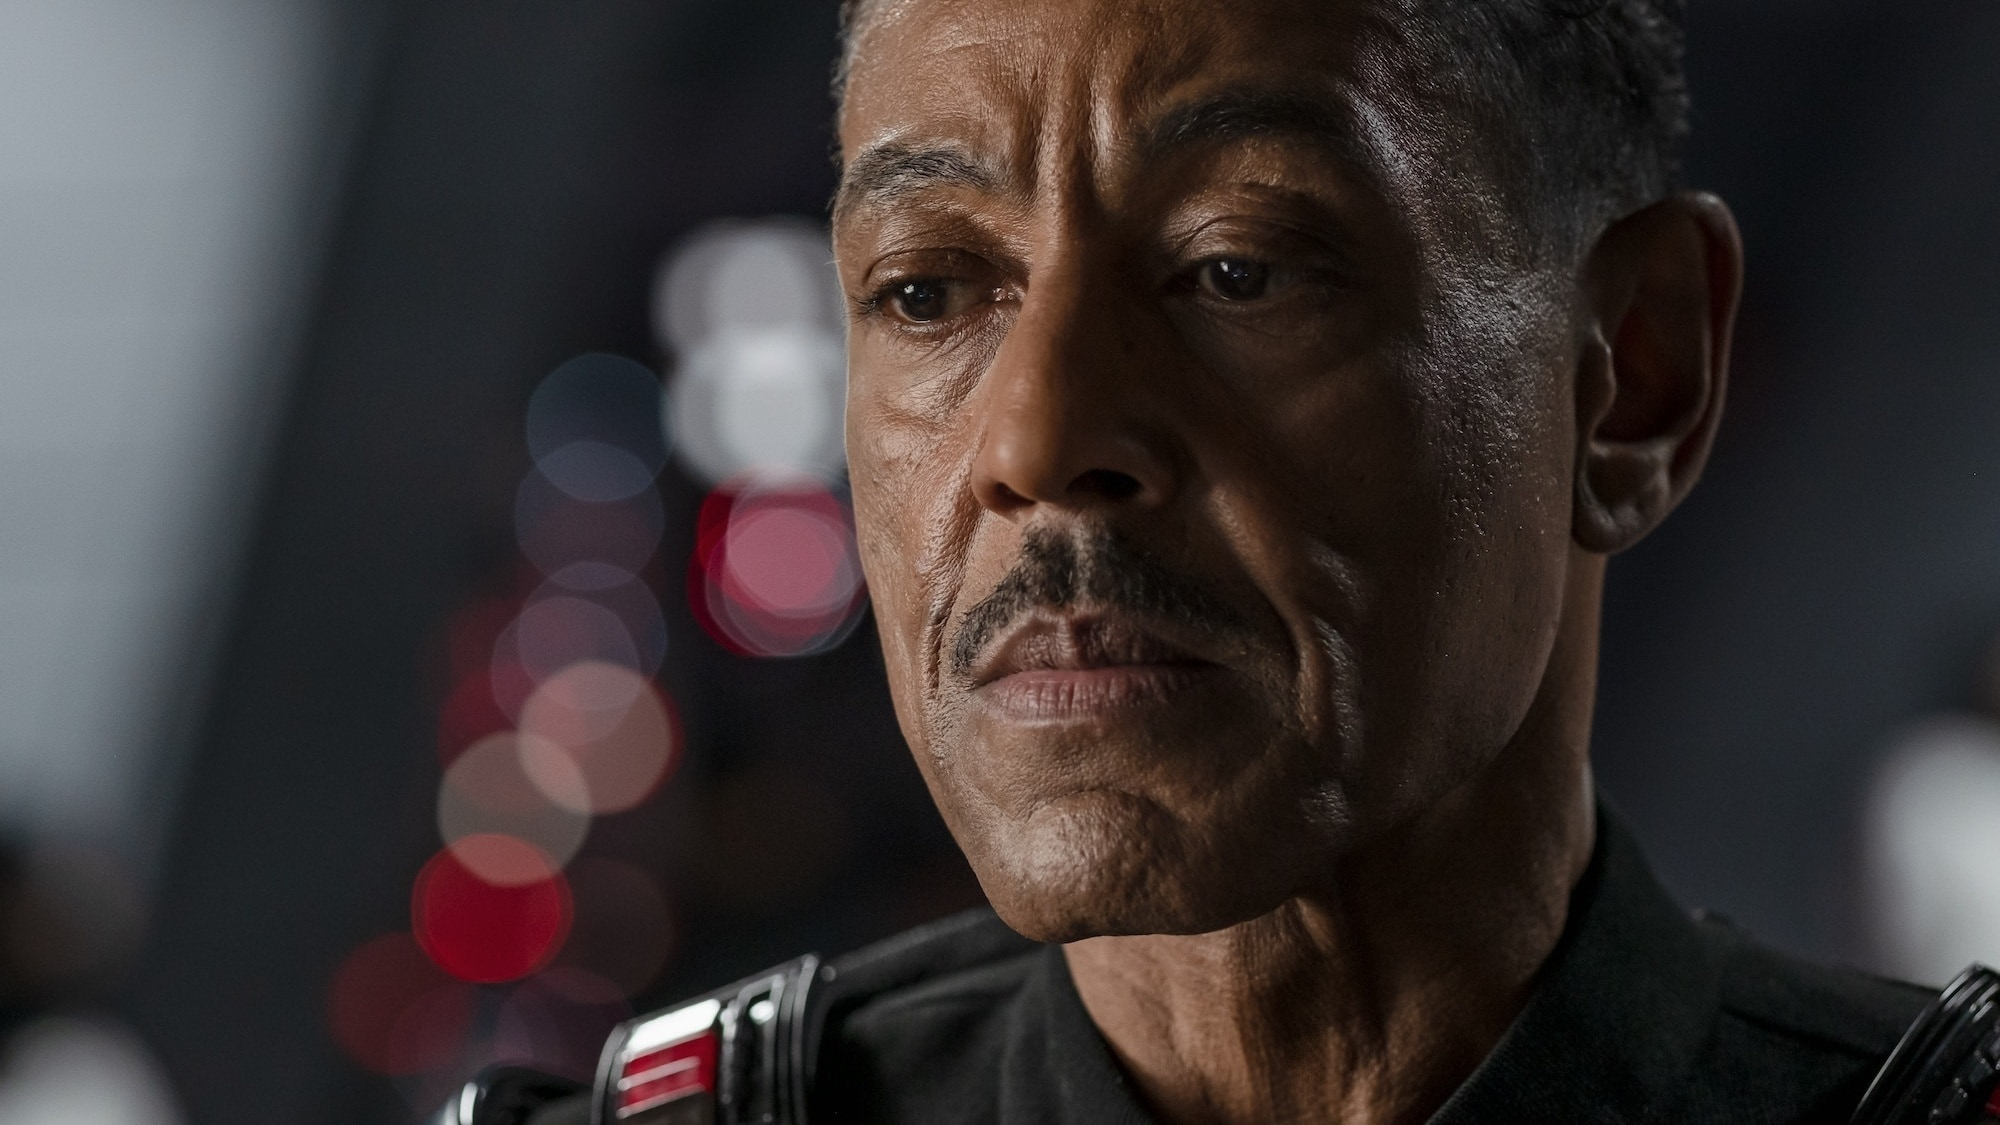 Giancarlo Esposito is Moff Gideon in THE MANDALORIAN, season two, exclusively on Disney+